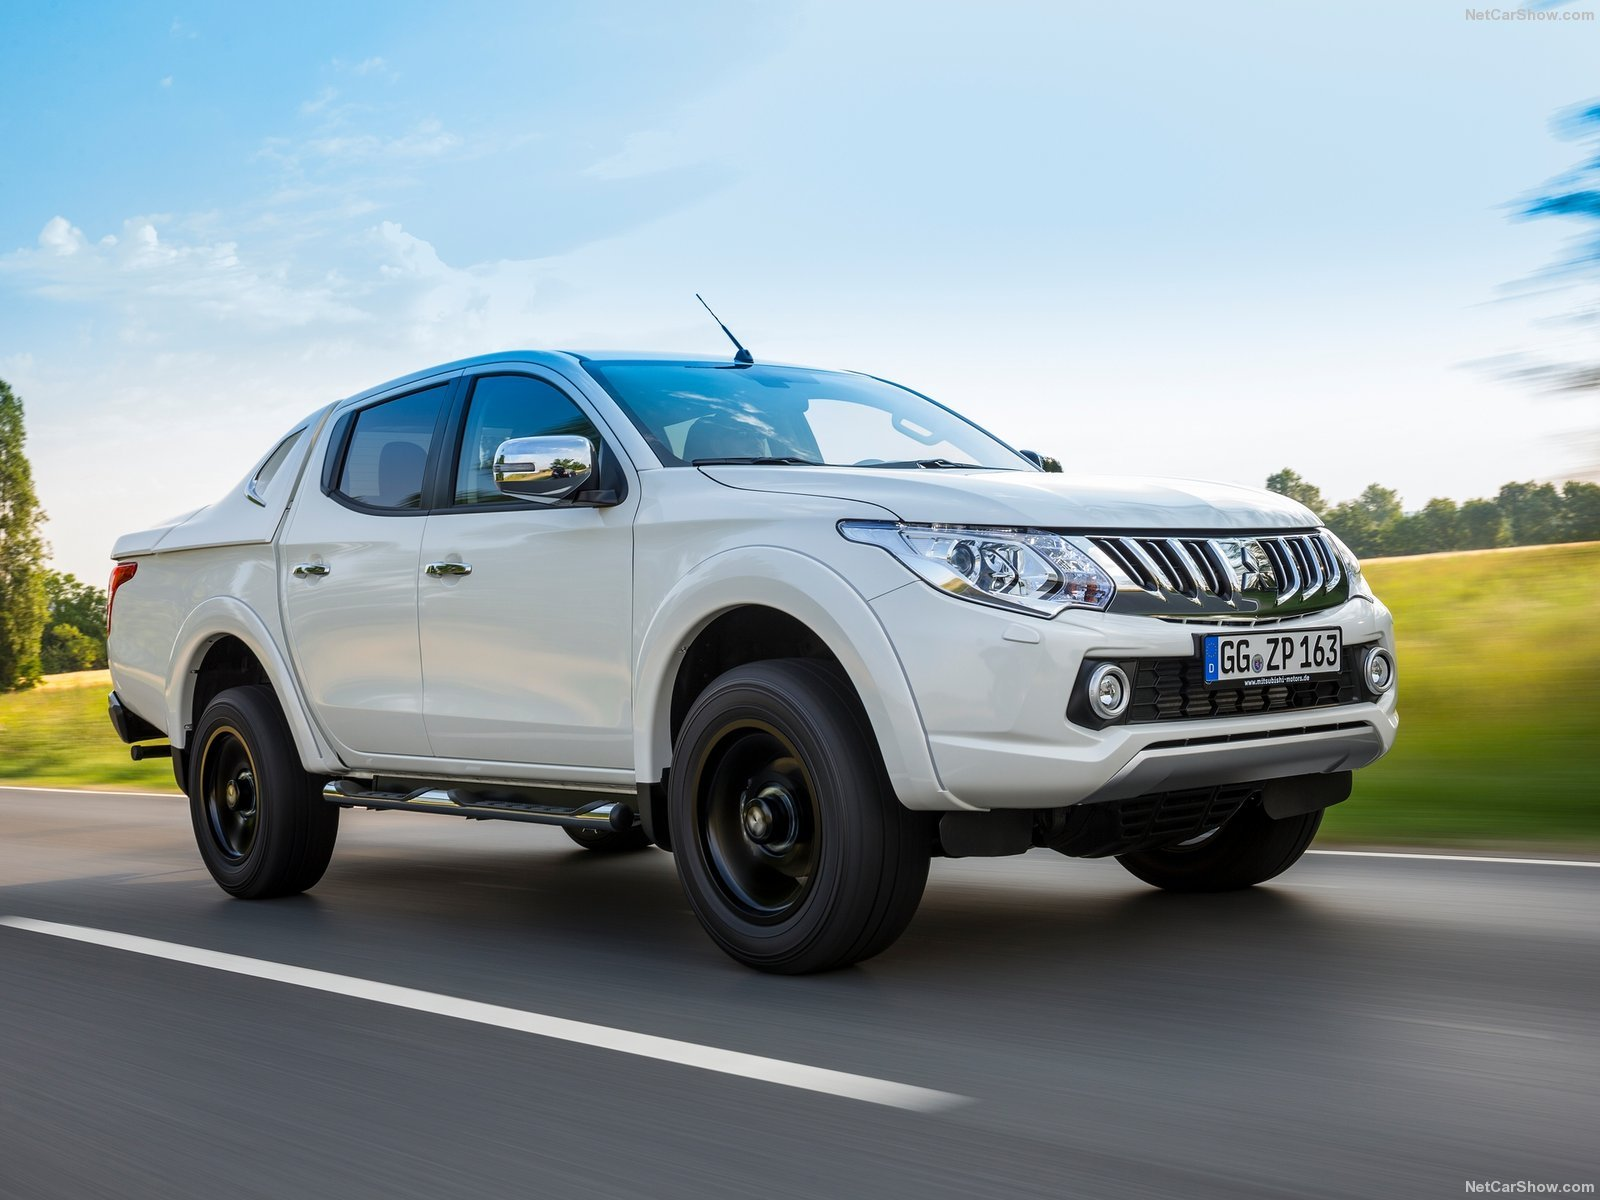 mitsubishi l200 white pickup cars 2016 wallpaper 1600x1200 905002 wallpaperup. Black Bedroom Furniture Sets. Home Design Ideas